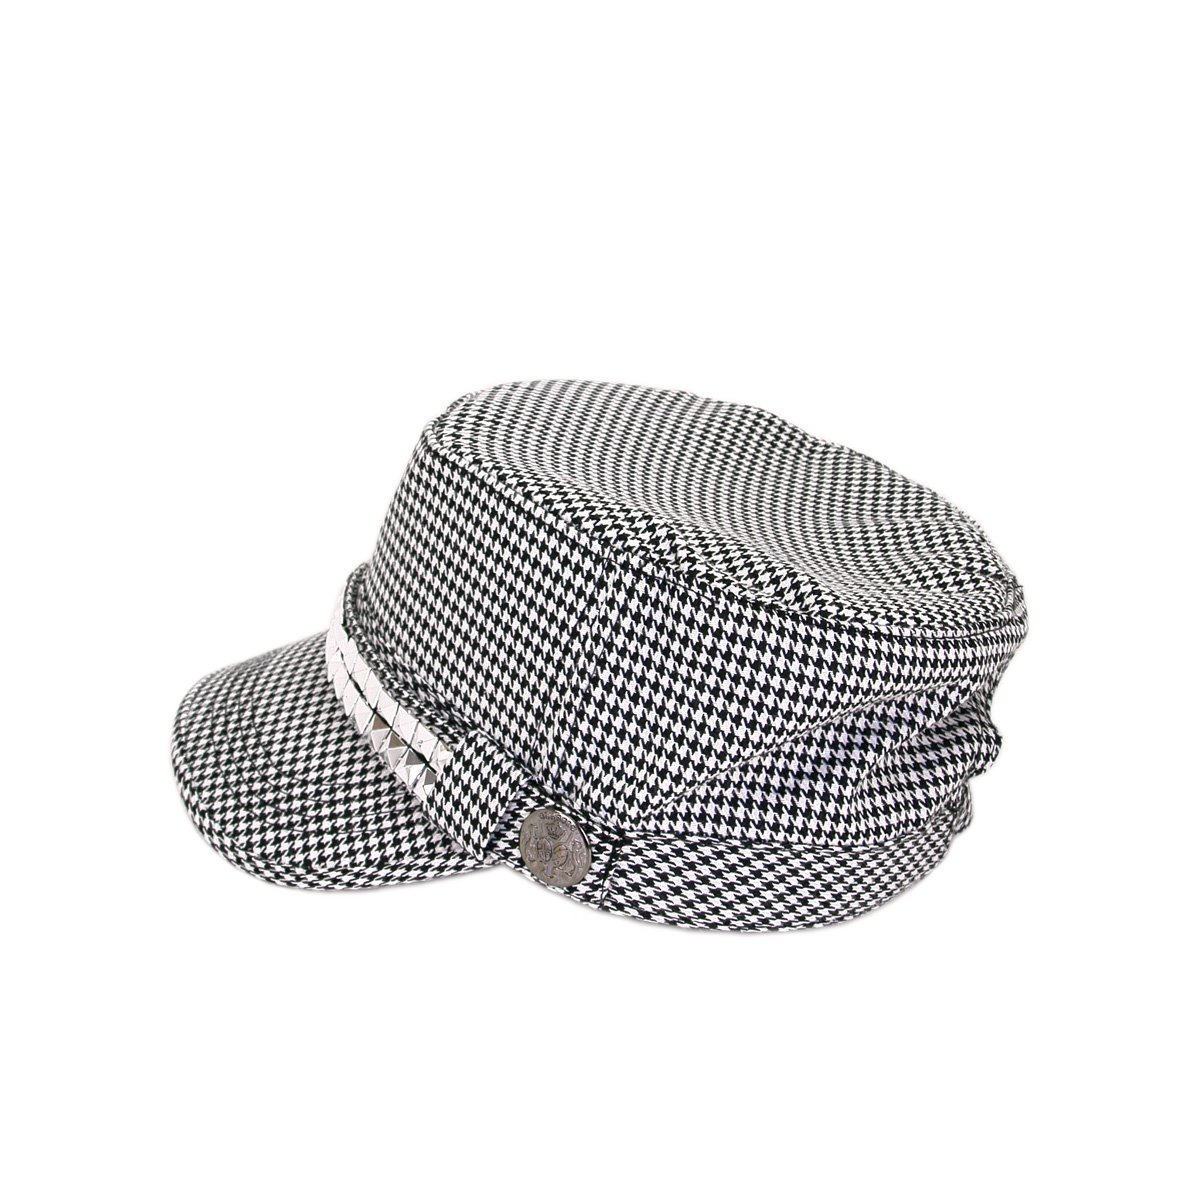 d2542a54332 TrendsBlue Adjustable Cotton Military Style Studded Bling Army Cap ...